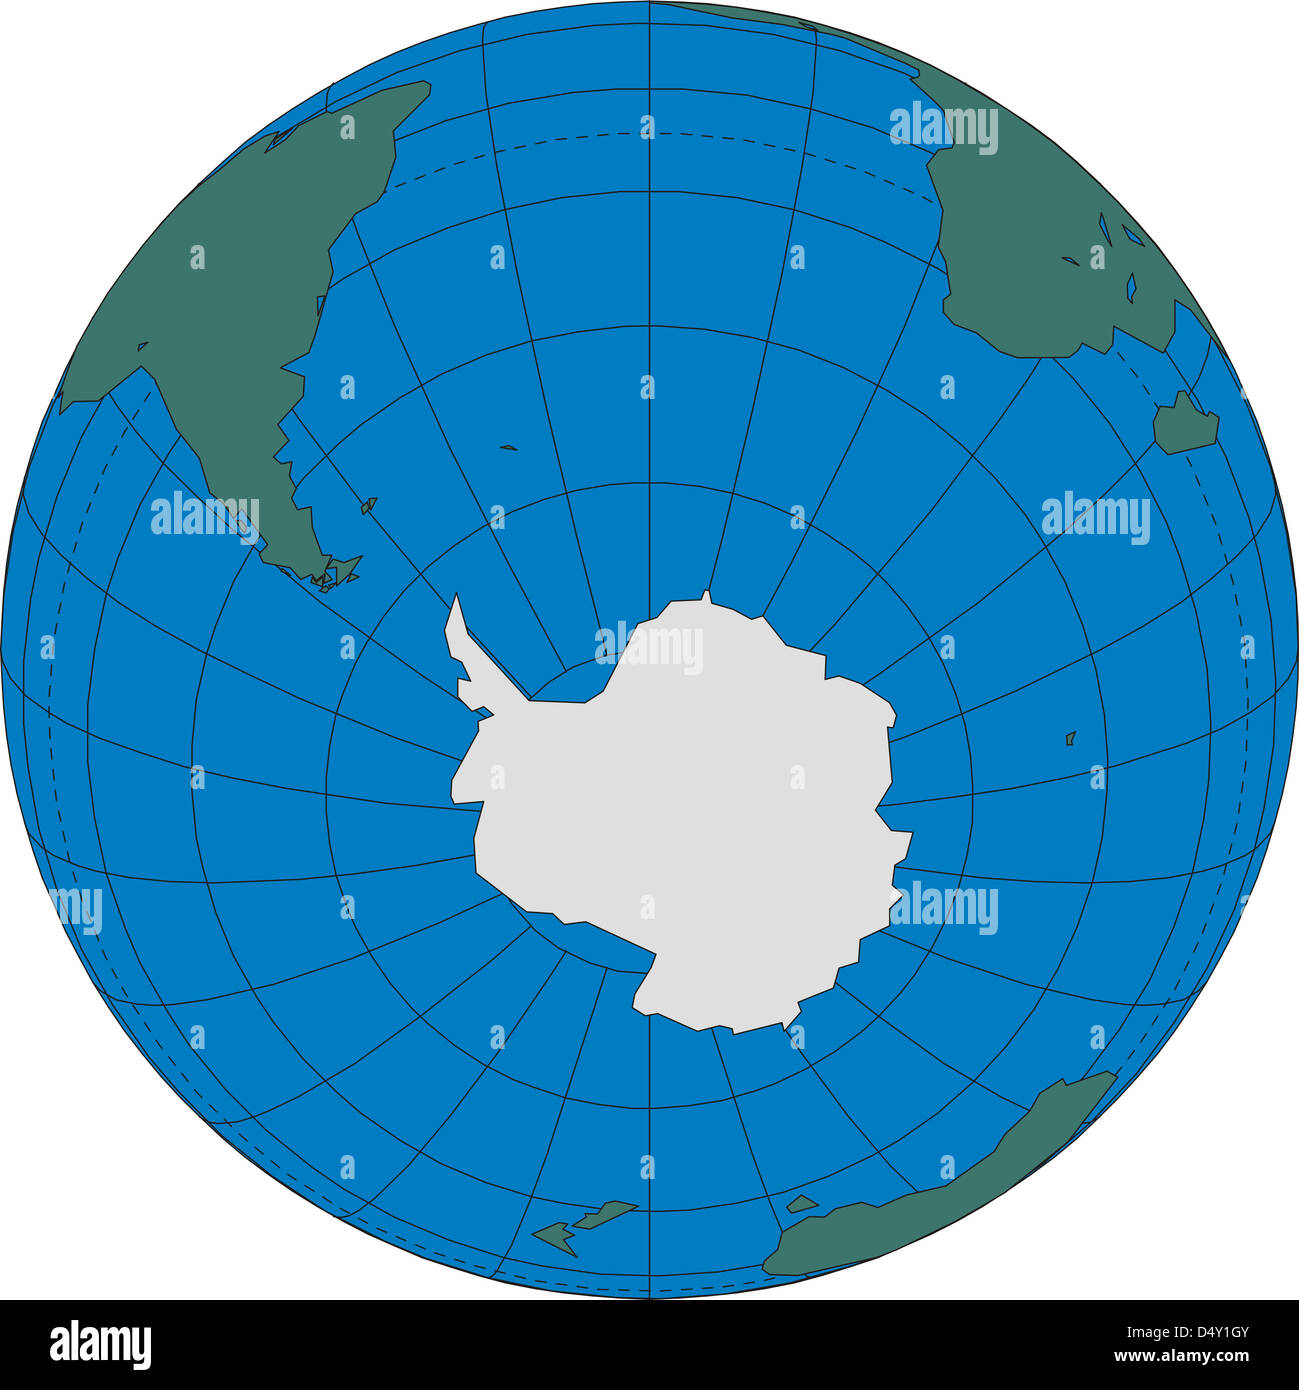 World Map Globe Antarctica South Pole Stock Photo Royalty Free - Where is antarctica on the map